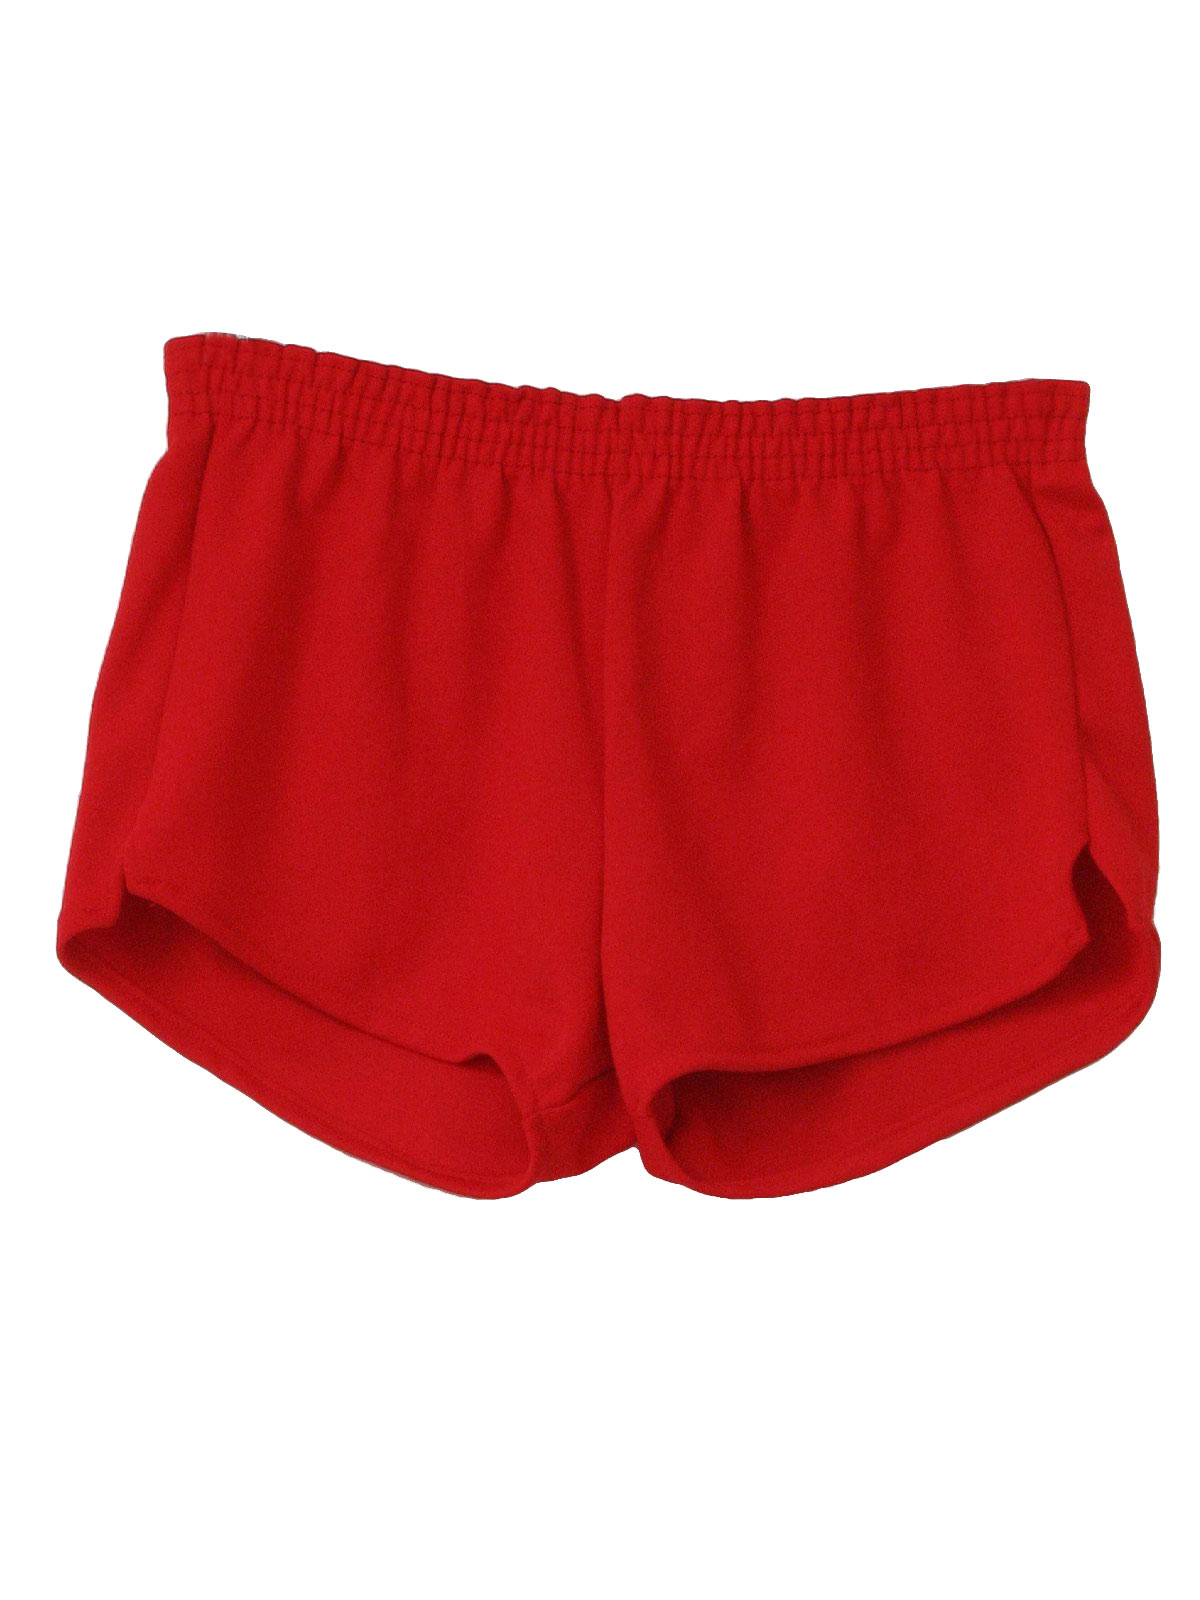 Vintage 1980 S Shorts 80s Russell Mens Red Super Short